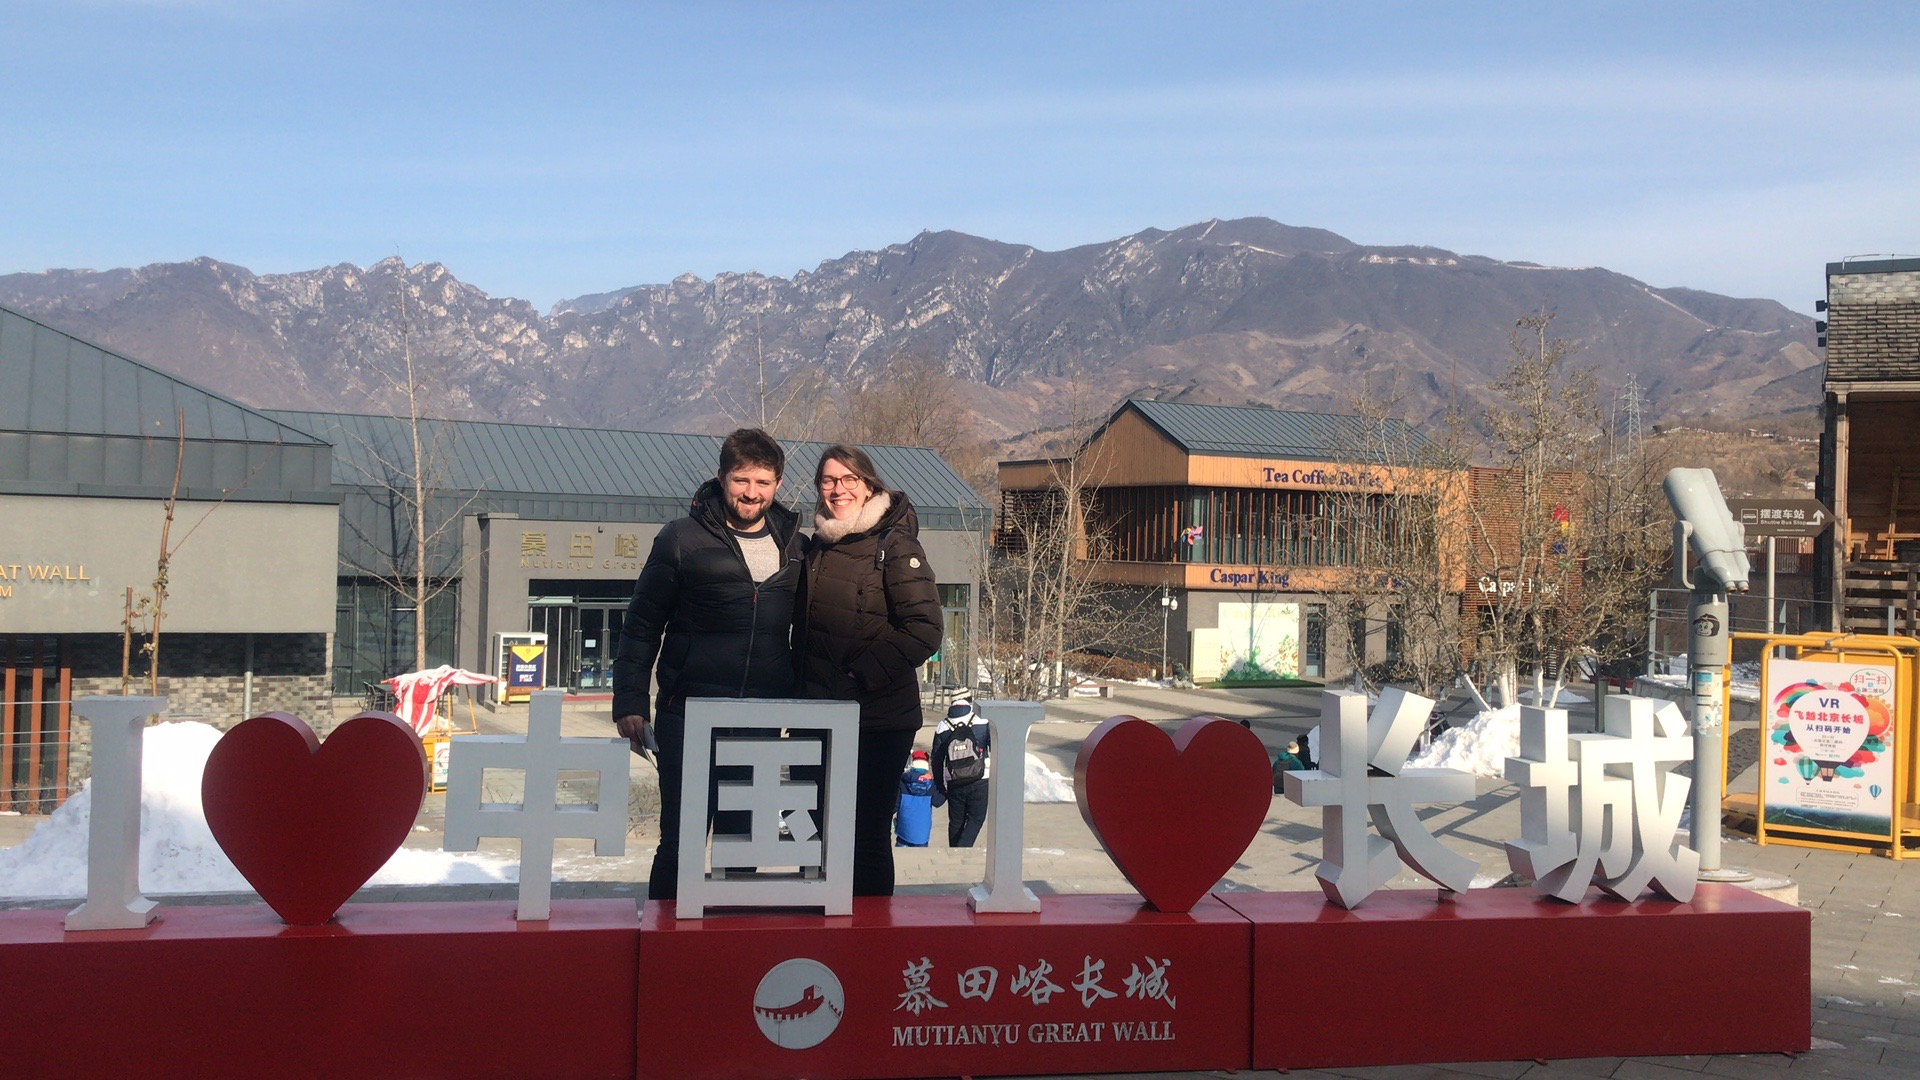 taxi to mutianyu great wall, car service, english driver, car rental with driver, private car with driver, great wall of china